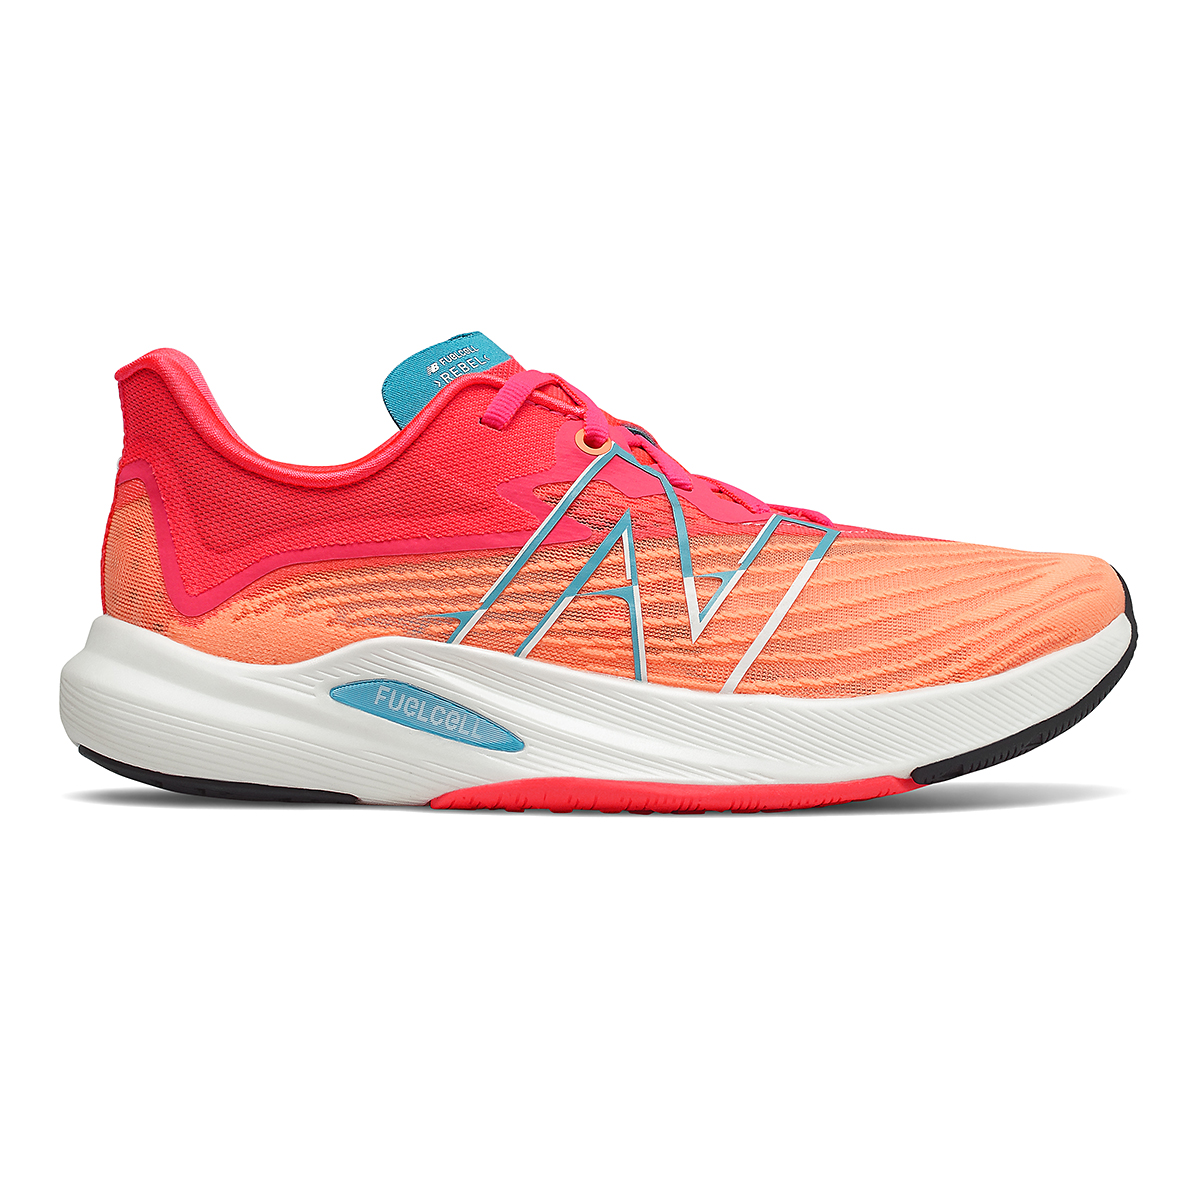 Women's New Balance Fuelcell Rebel V2 Running Shoe - Color: Citrus Punch/Vivid Coral/Ghost Pepper - Size: 7 - Width: Regular, Citrus Punch/Vivid Coral/Ghost Pepper, large, image 1